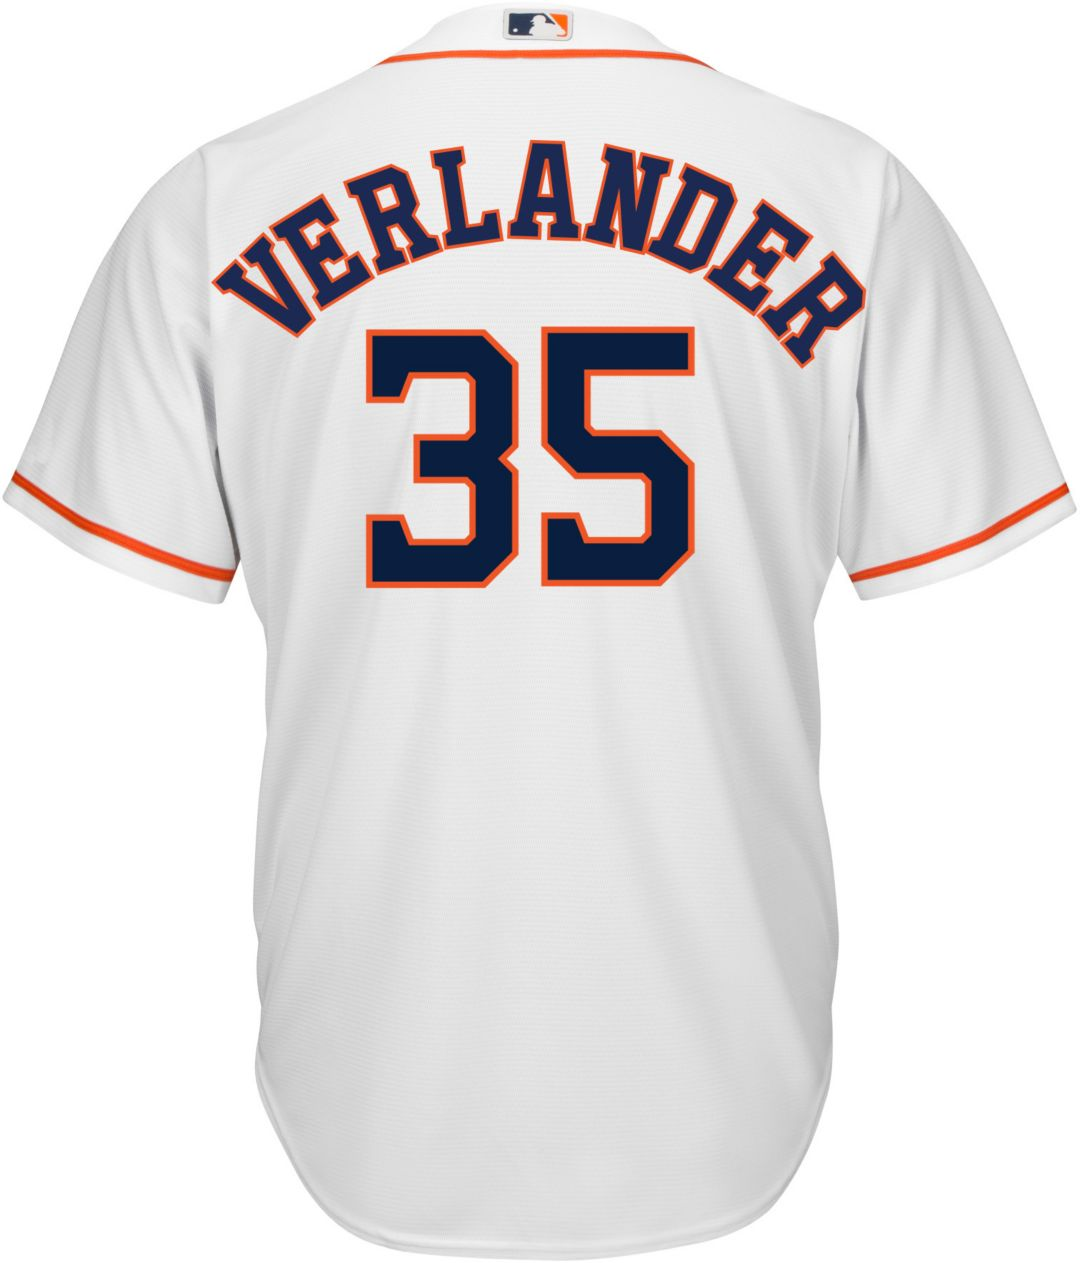 big sale 9a64f c1bbb Youth Replica Houston Astros Justin Verlander #35 Home White Jersey